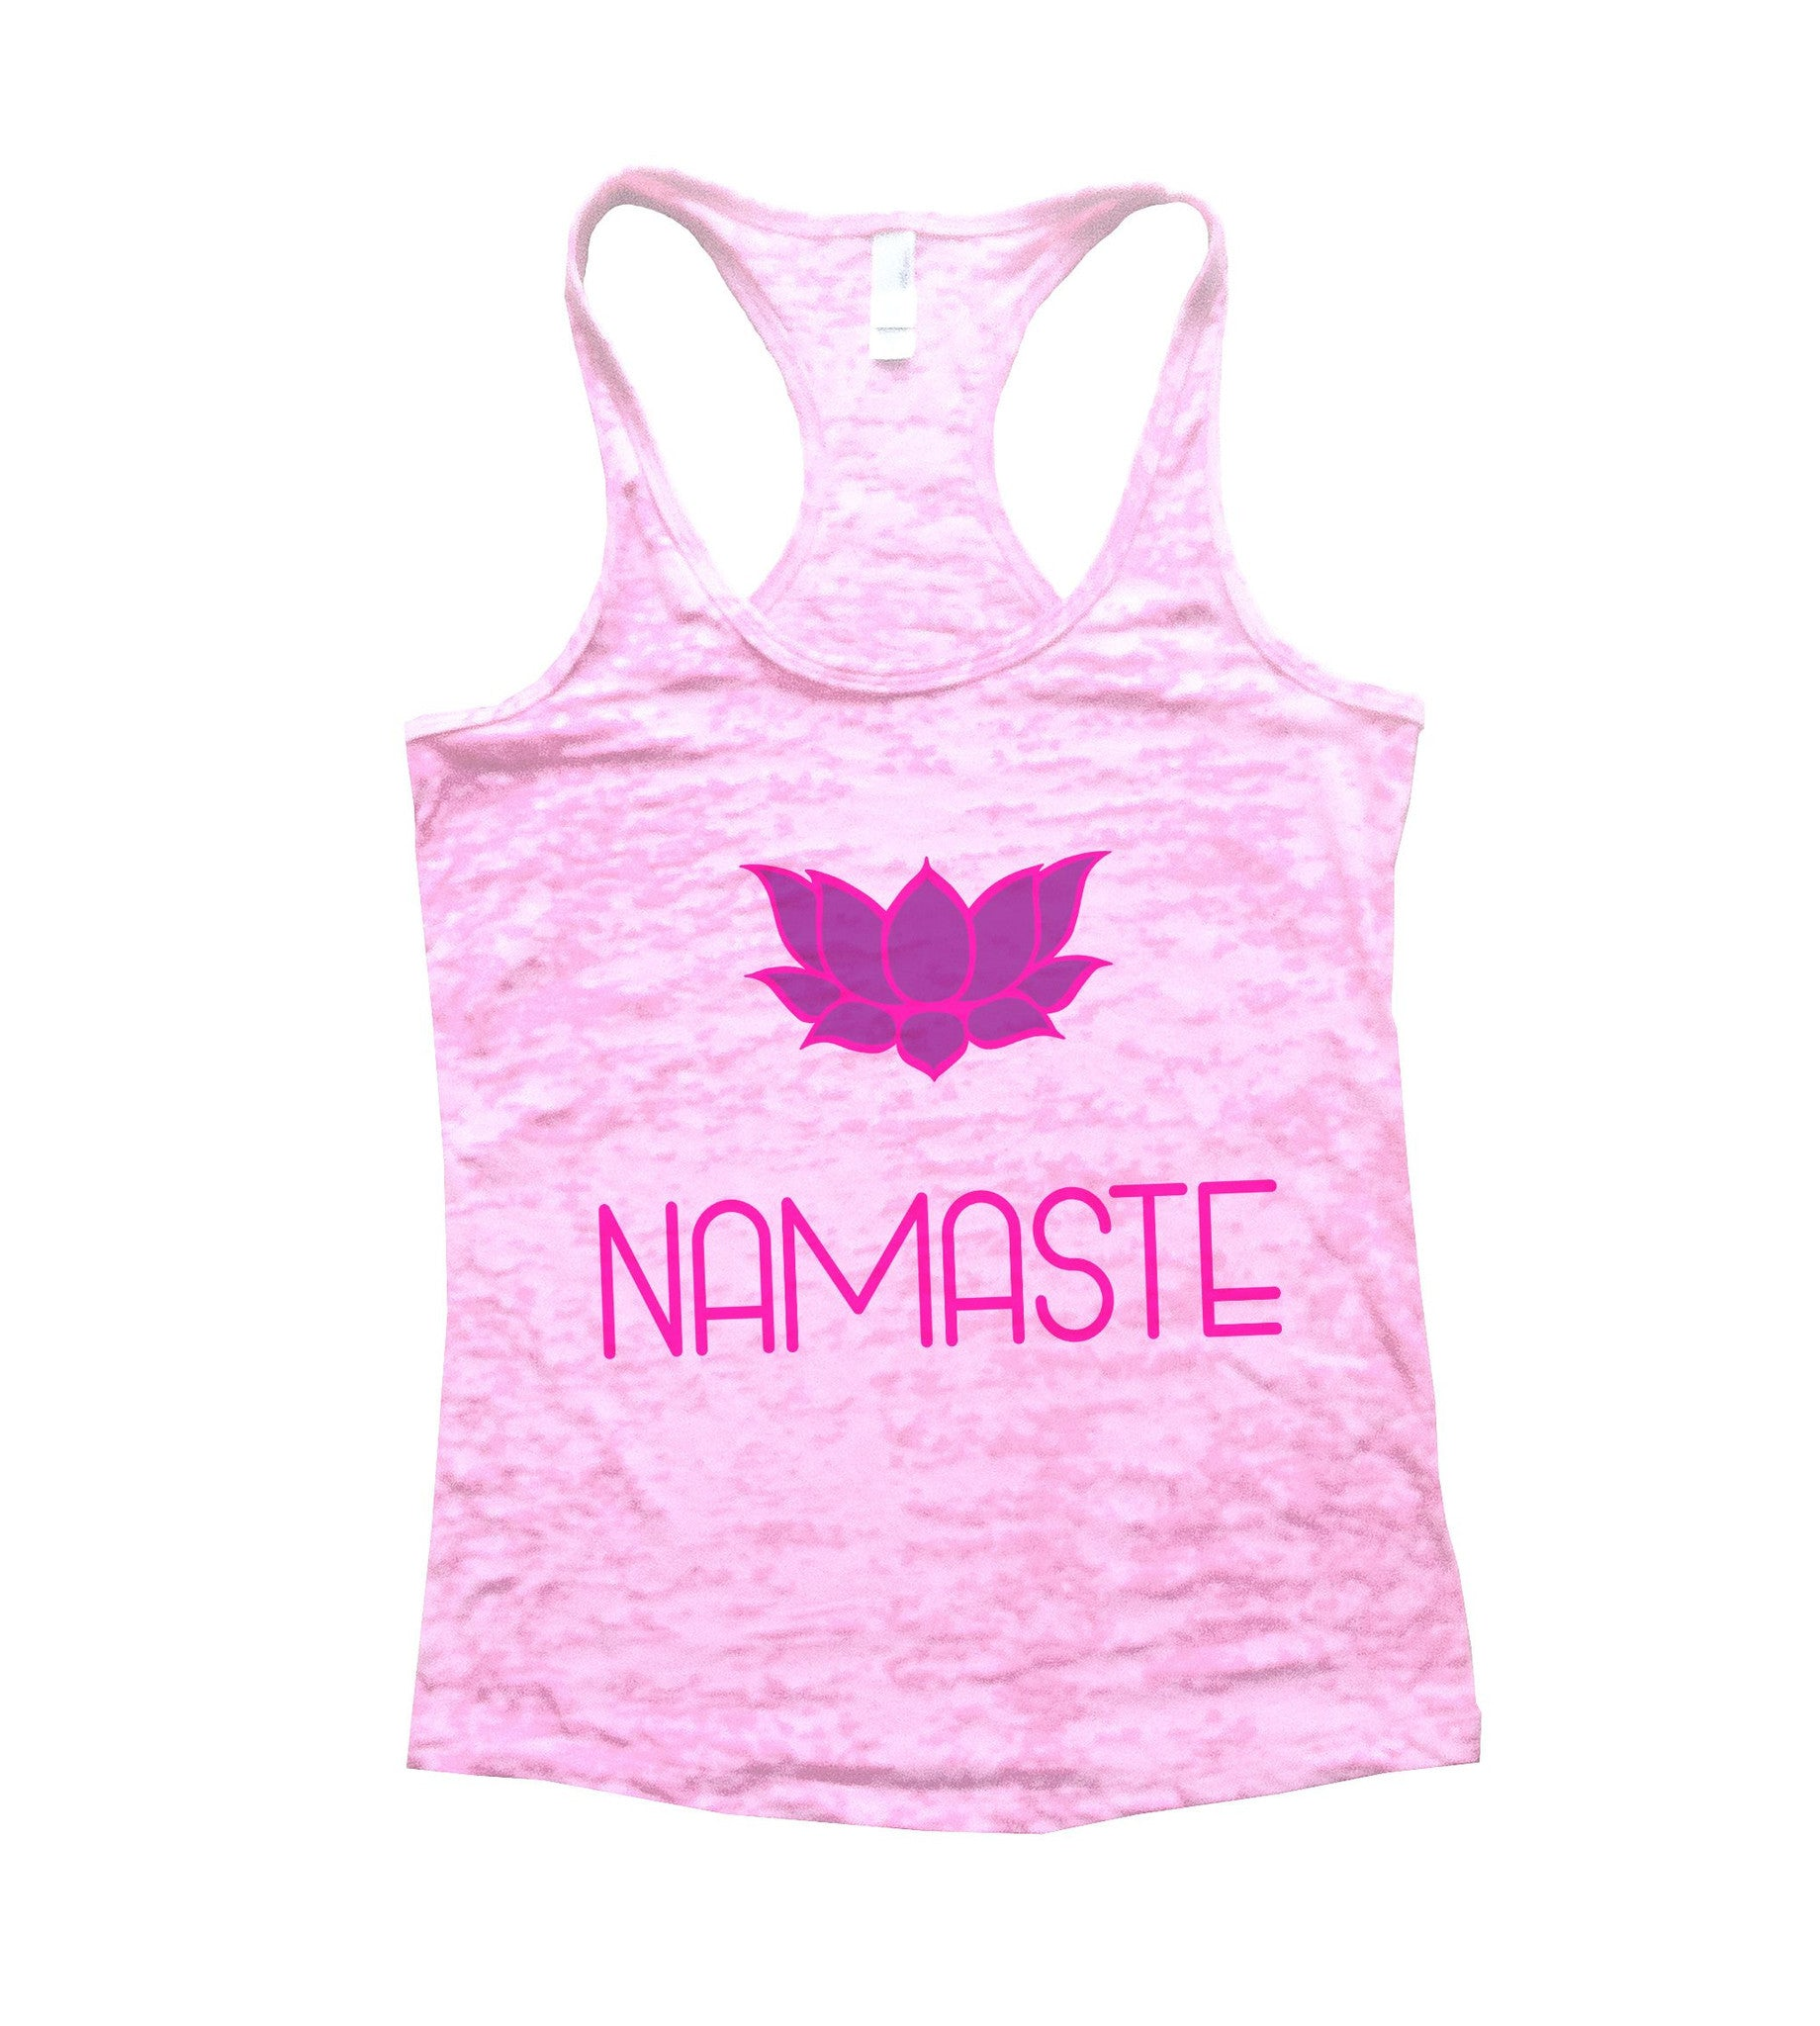 Namaste Burnout Tank Top By BurnoutTankTops.com - 631 - Funny Shirts Tank Tops Burnouts and Triblends  - 4